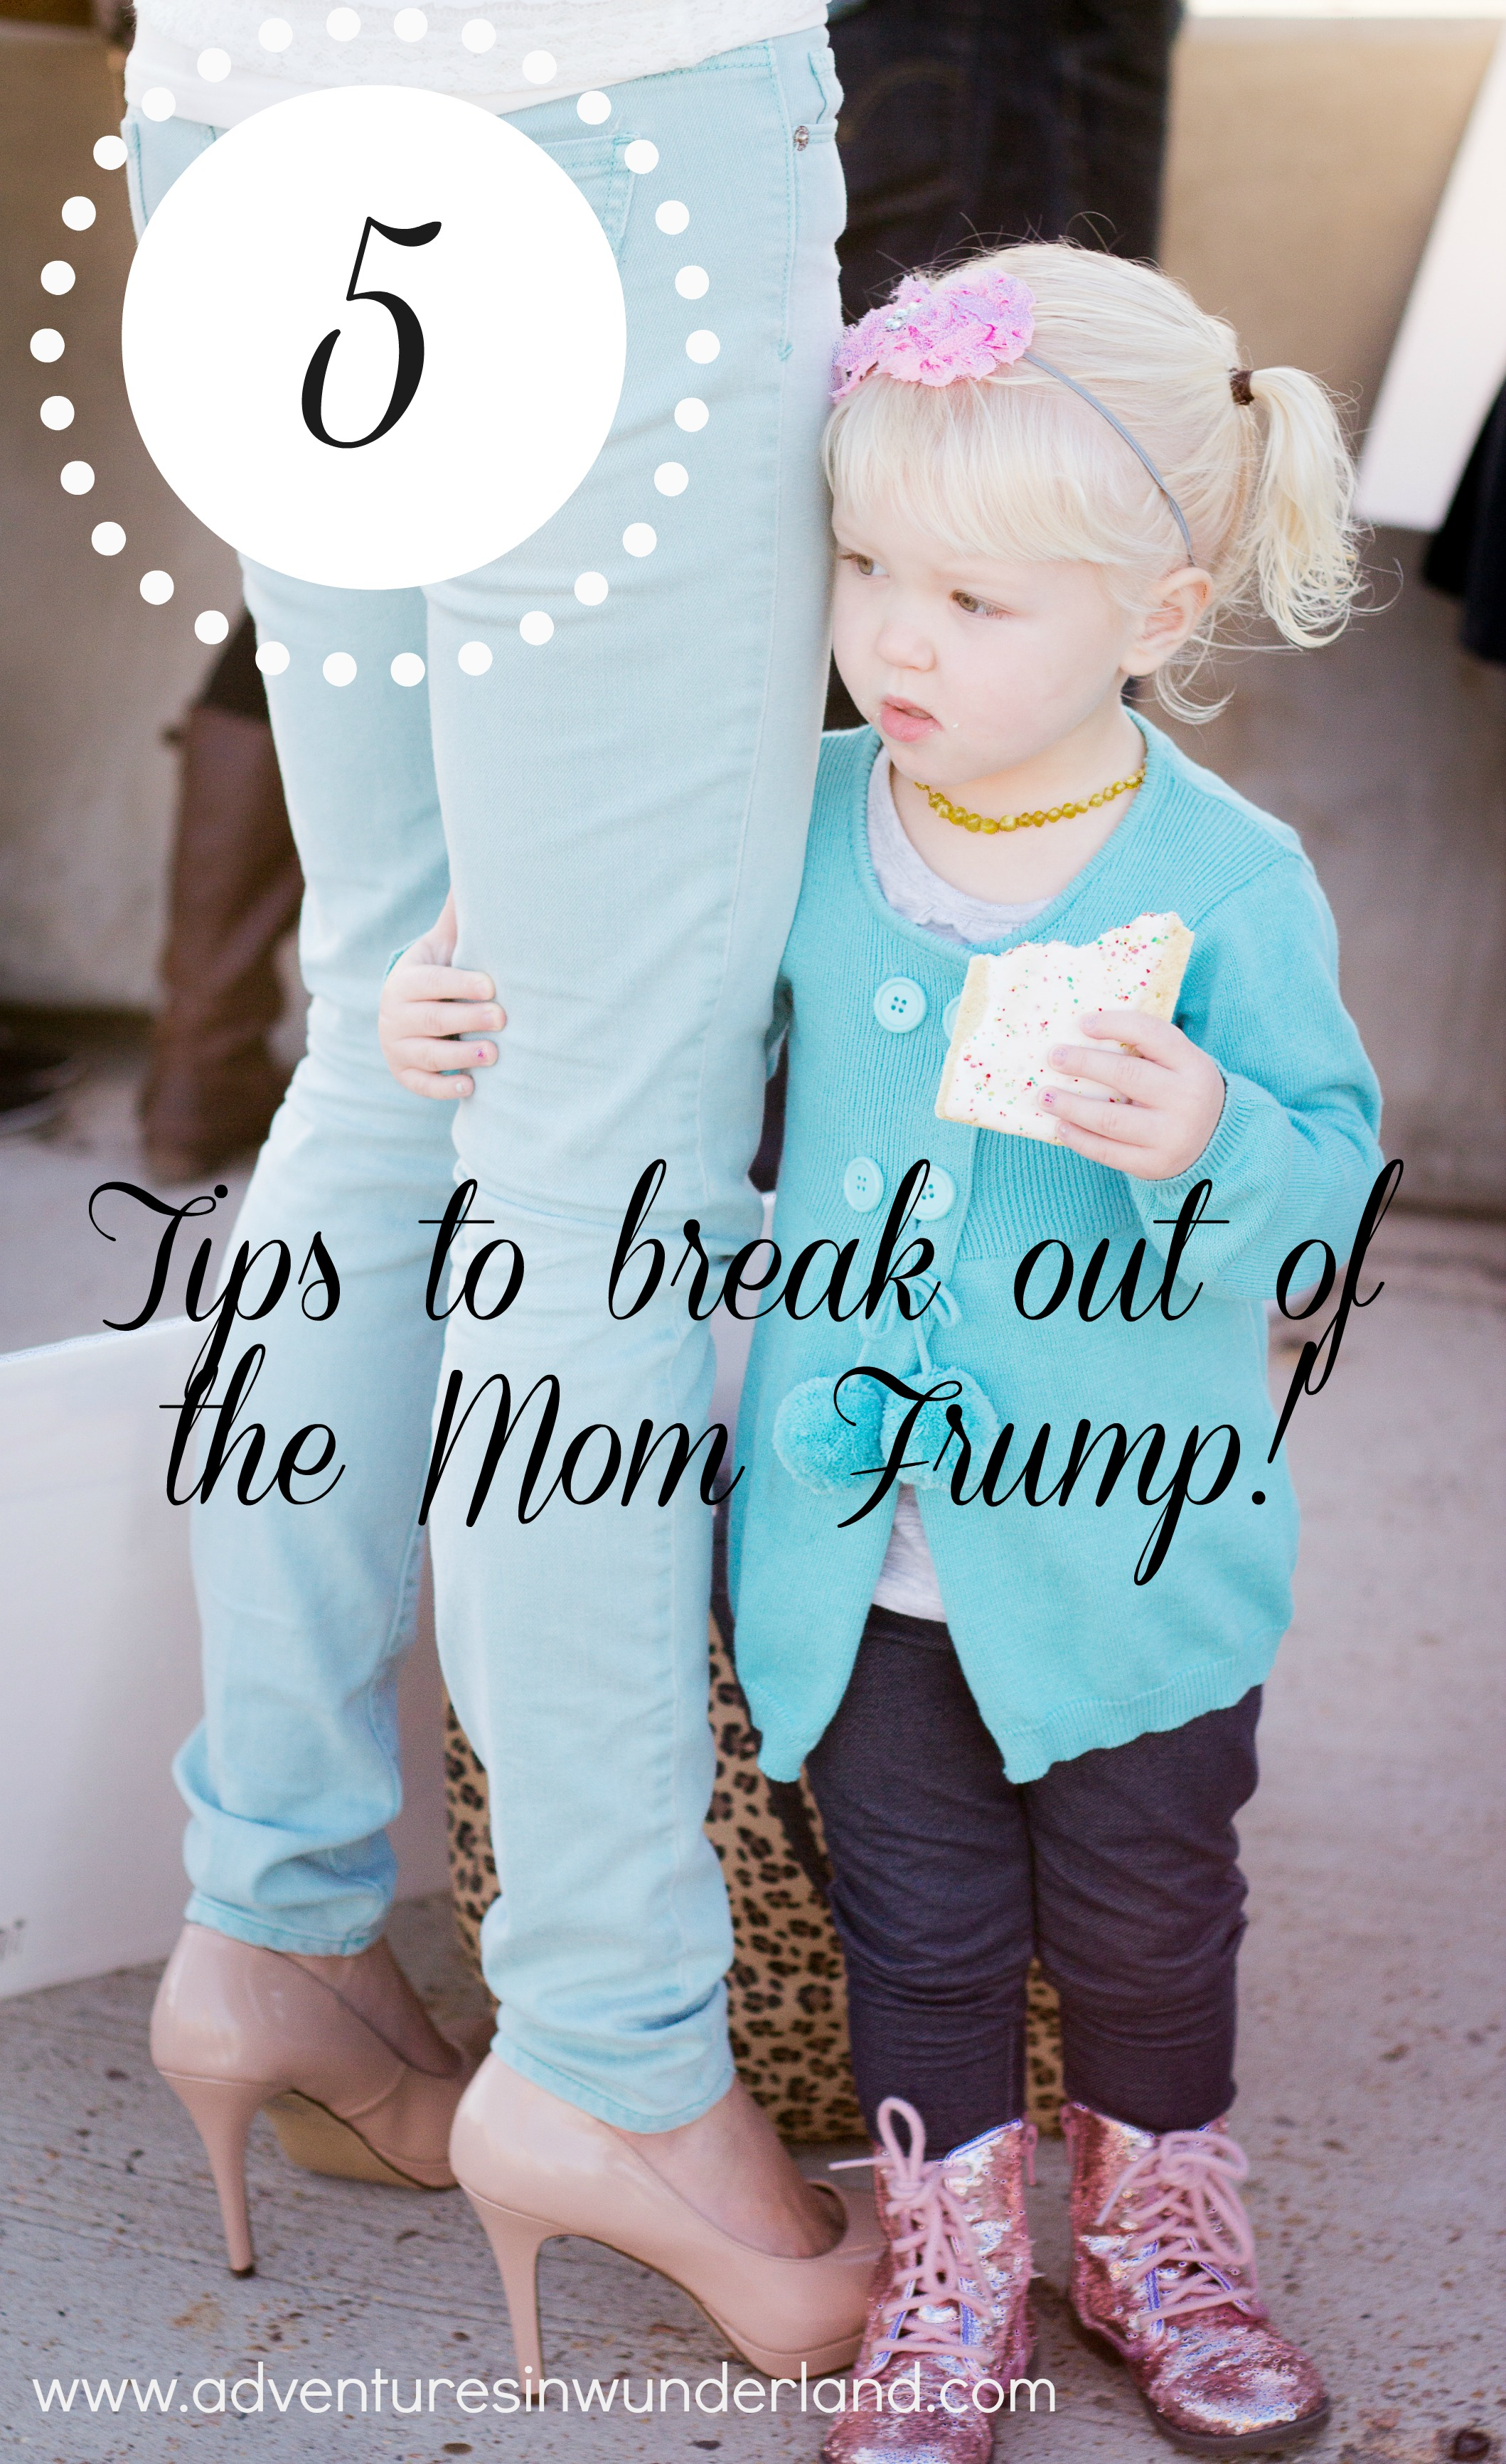 5 Tips to Break out of the Mom Frump